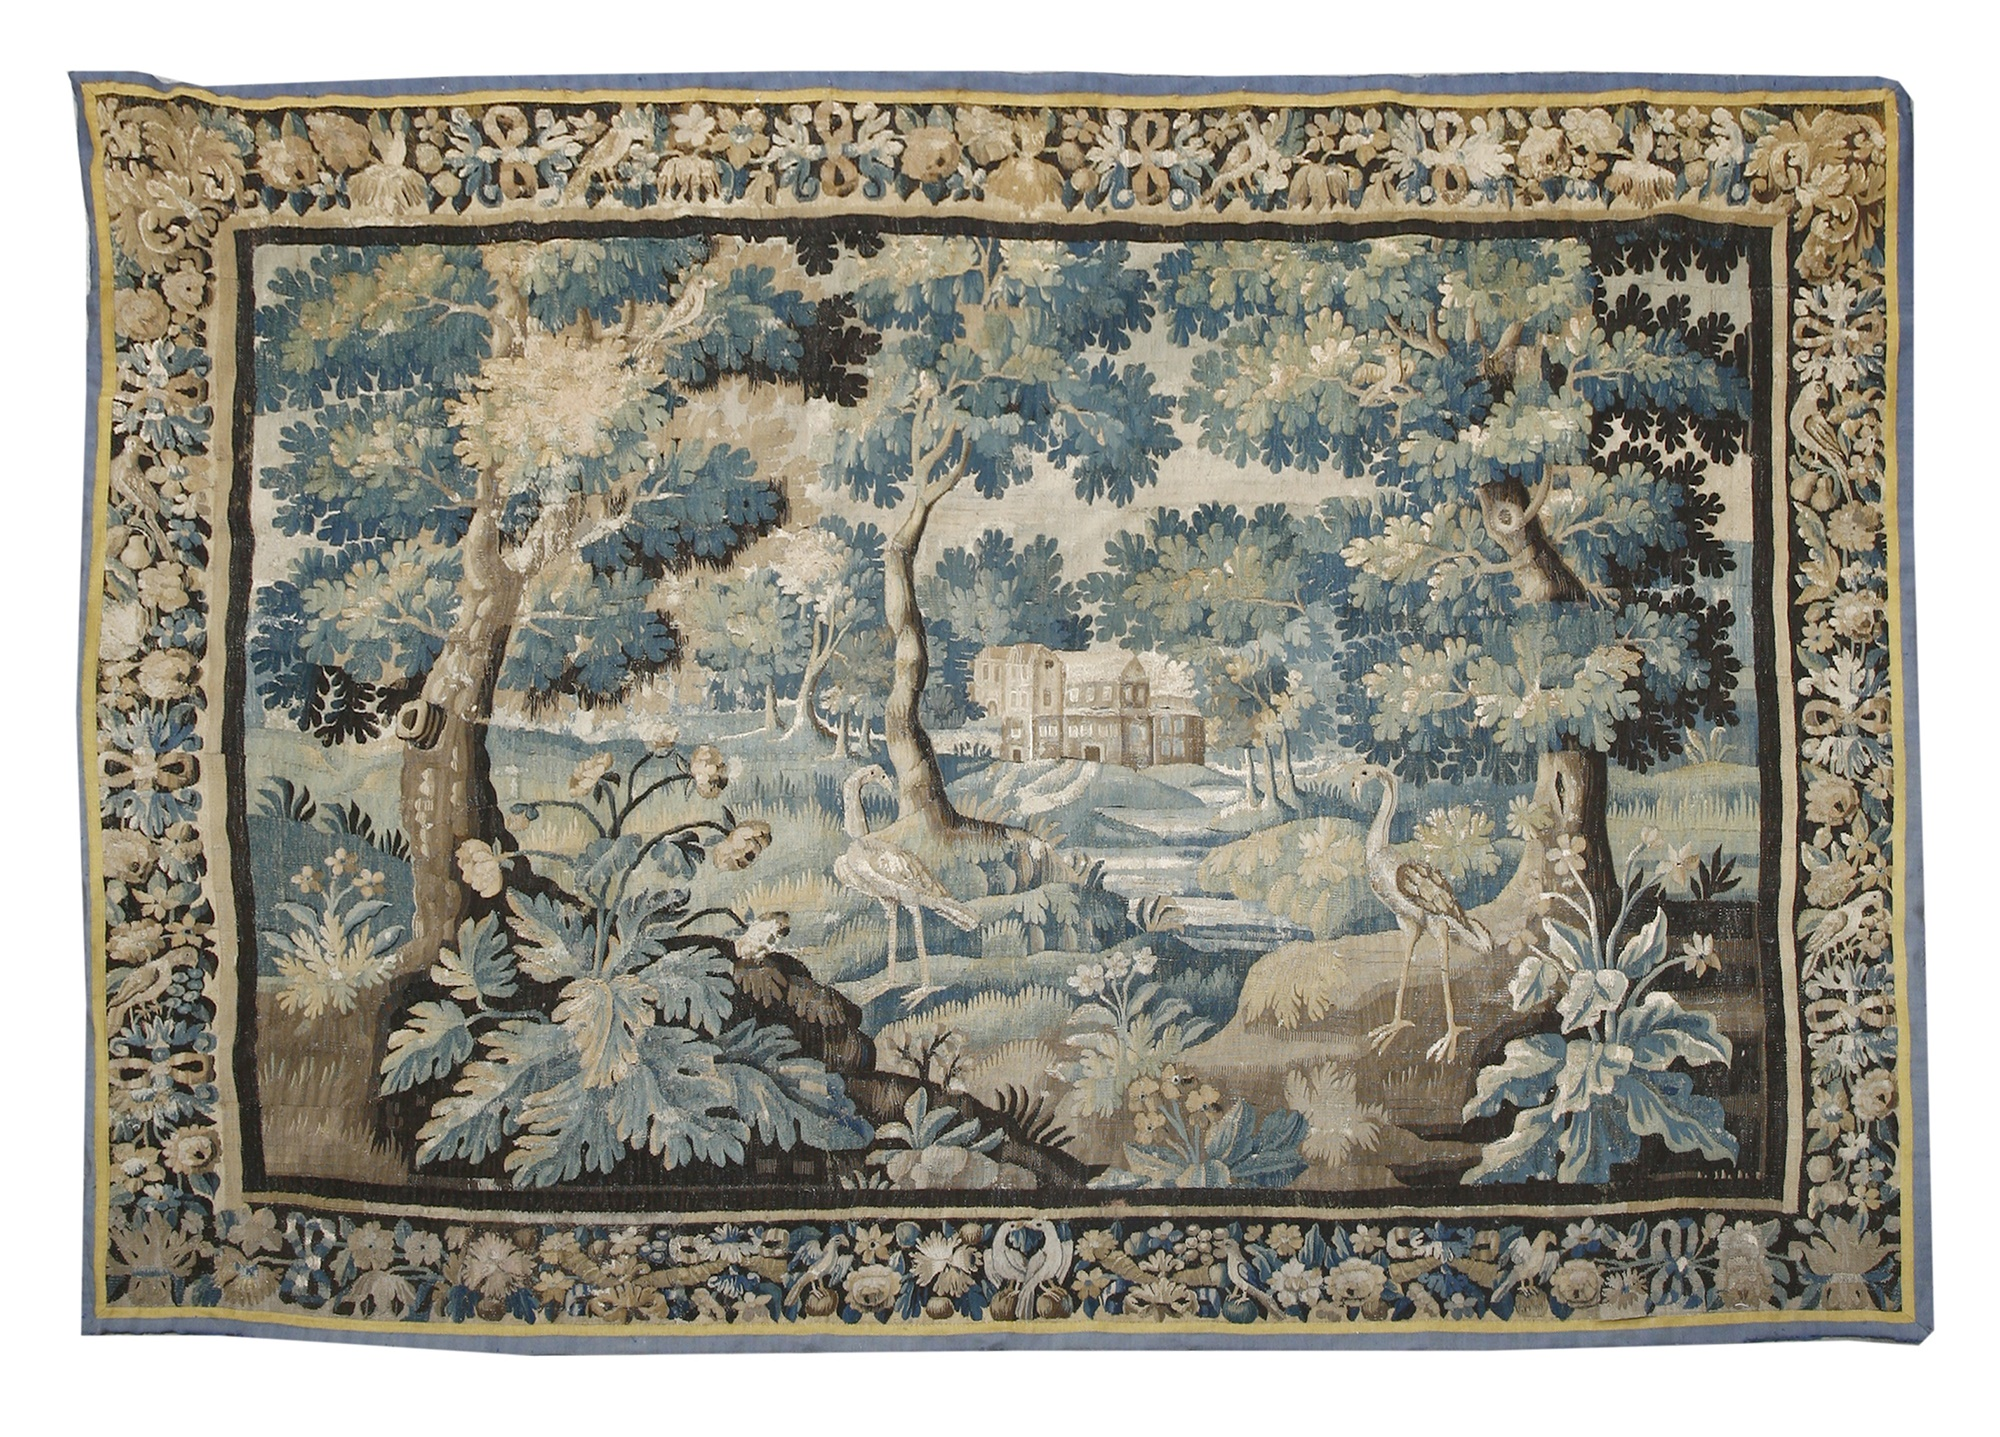 A Flemish verdure tapestry, early 18th century